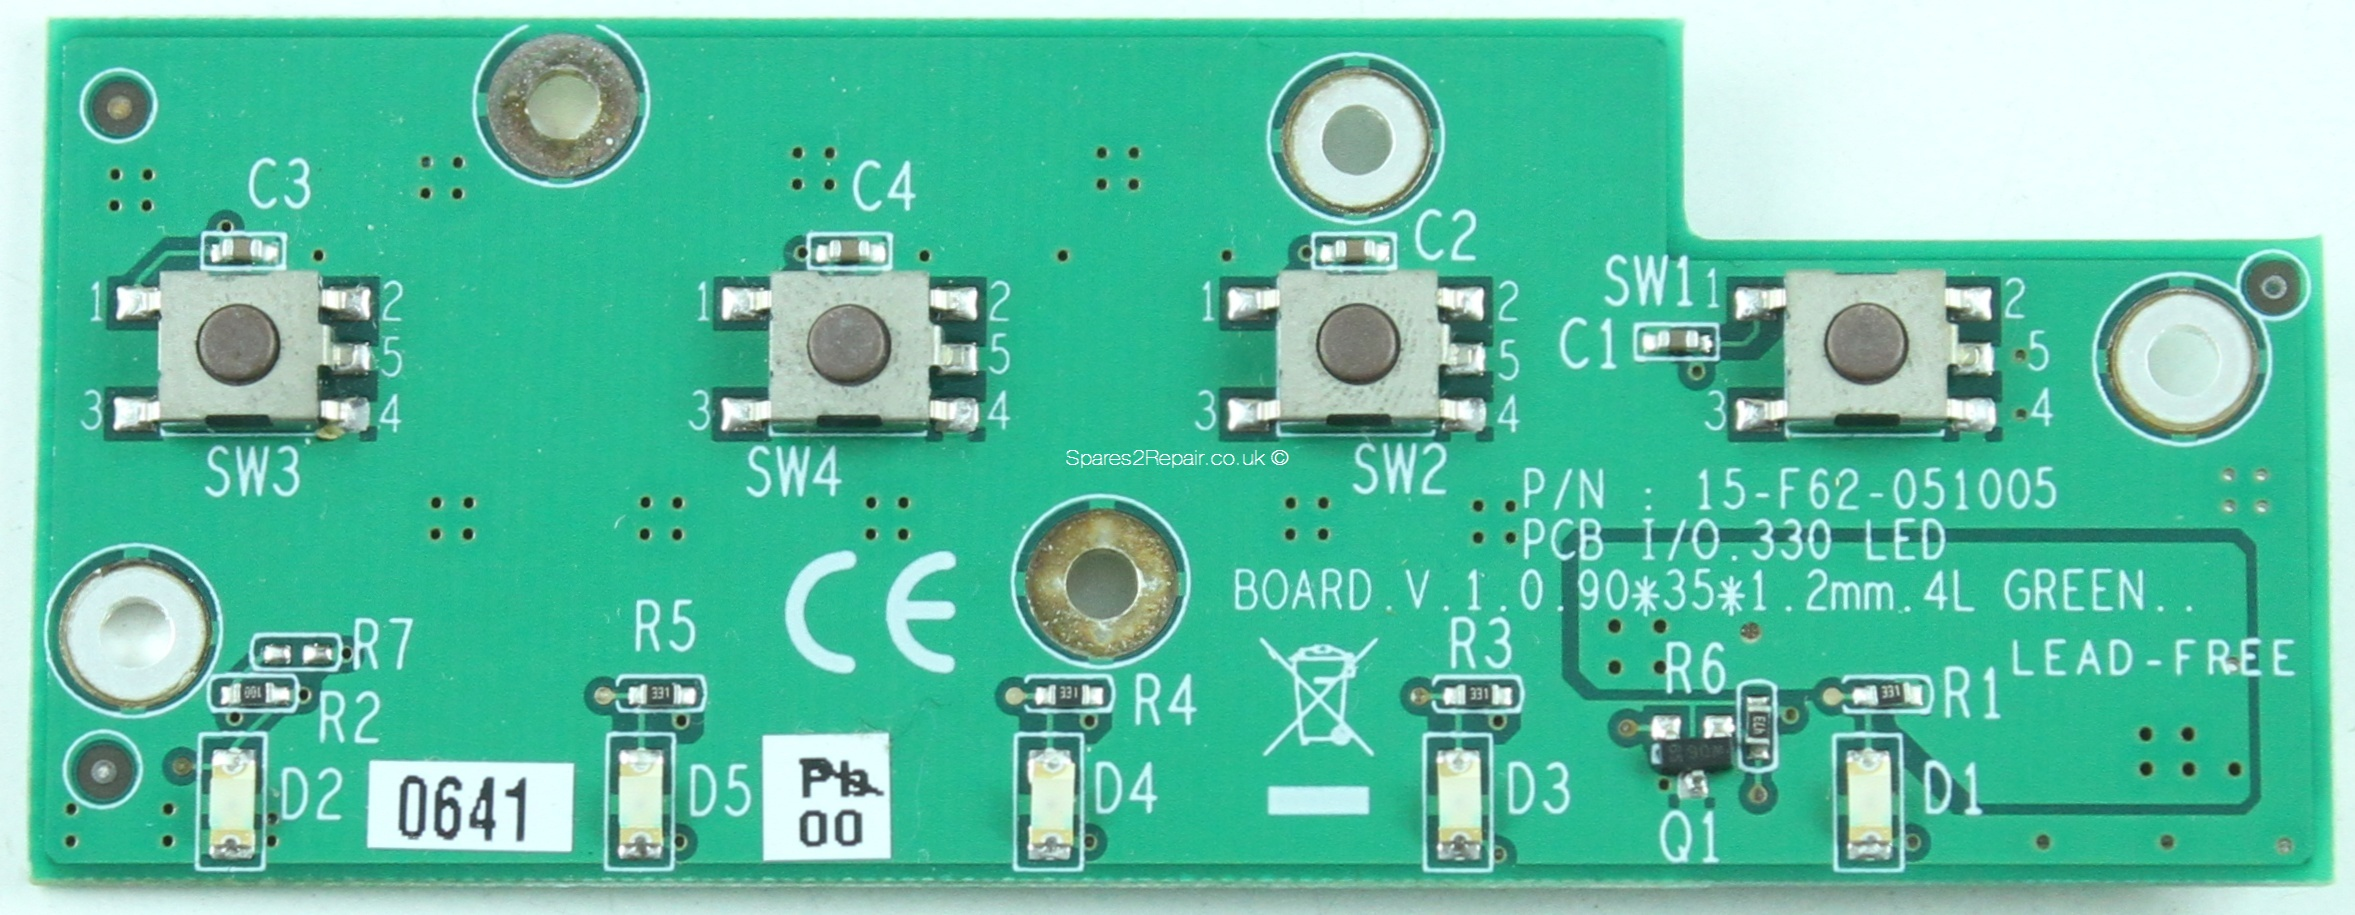 Advent 7109 - Button & LED Board - 15-F62-051005